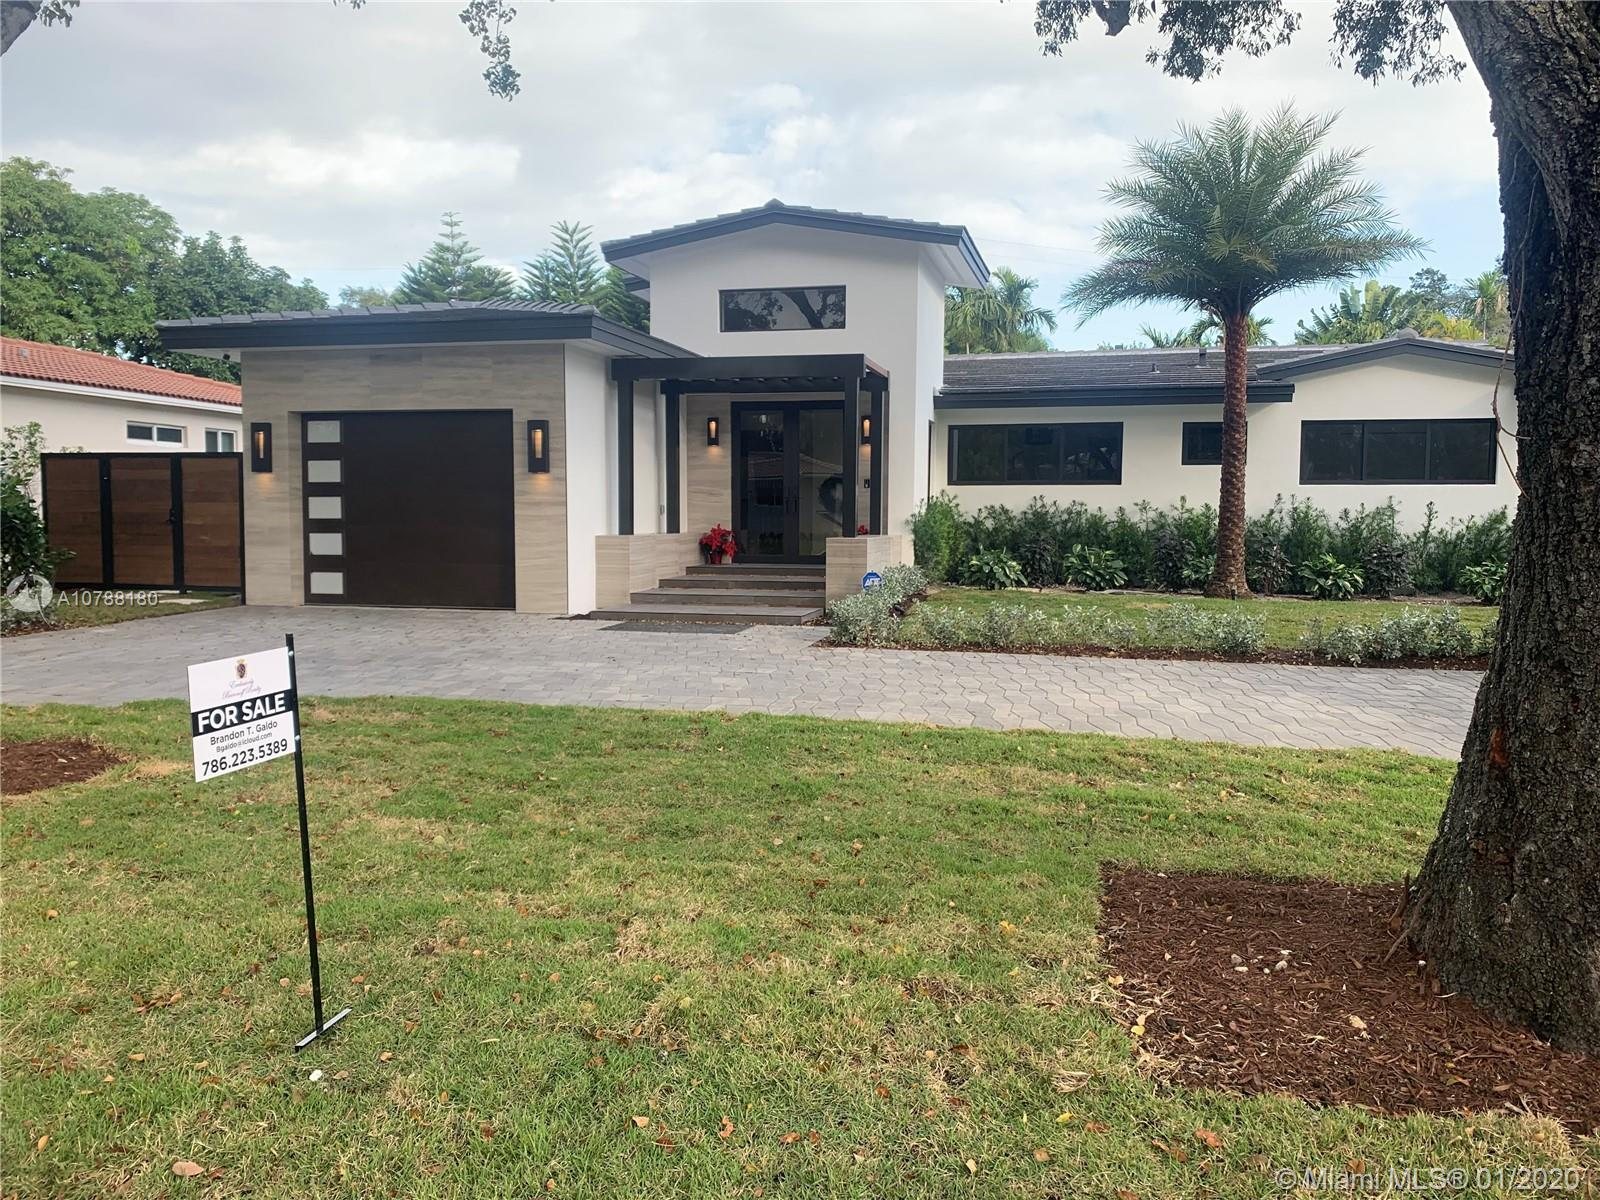 1225 NE 93rd St, Miami Shores, Florida 33138, 4 Bedrooms Bedrooms, 7 Rooms Rooms,5 BathroomsBathrooms,Residential,For Sale,1225 NE 93rd St,A10788180